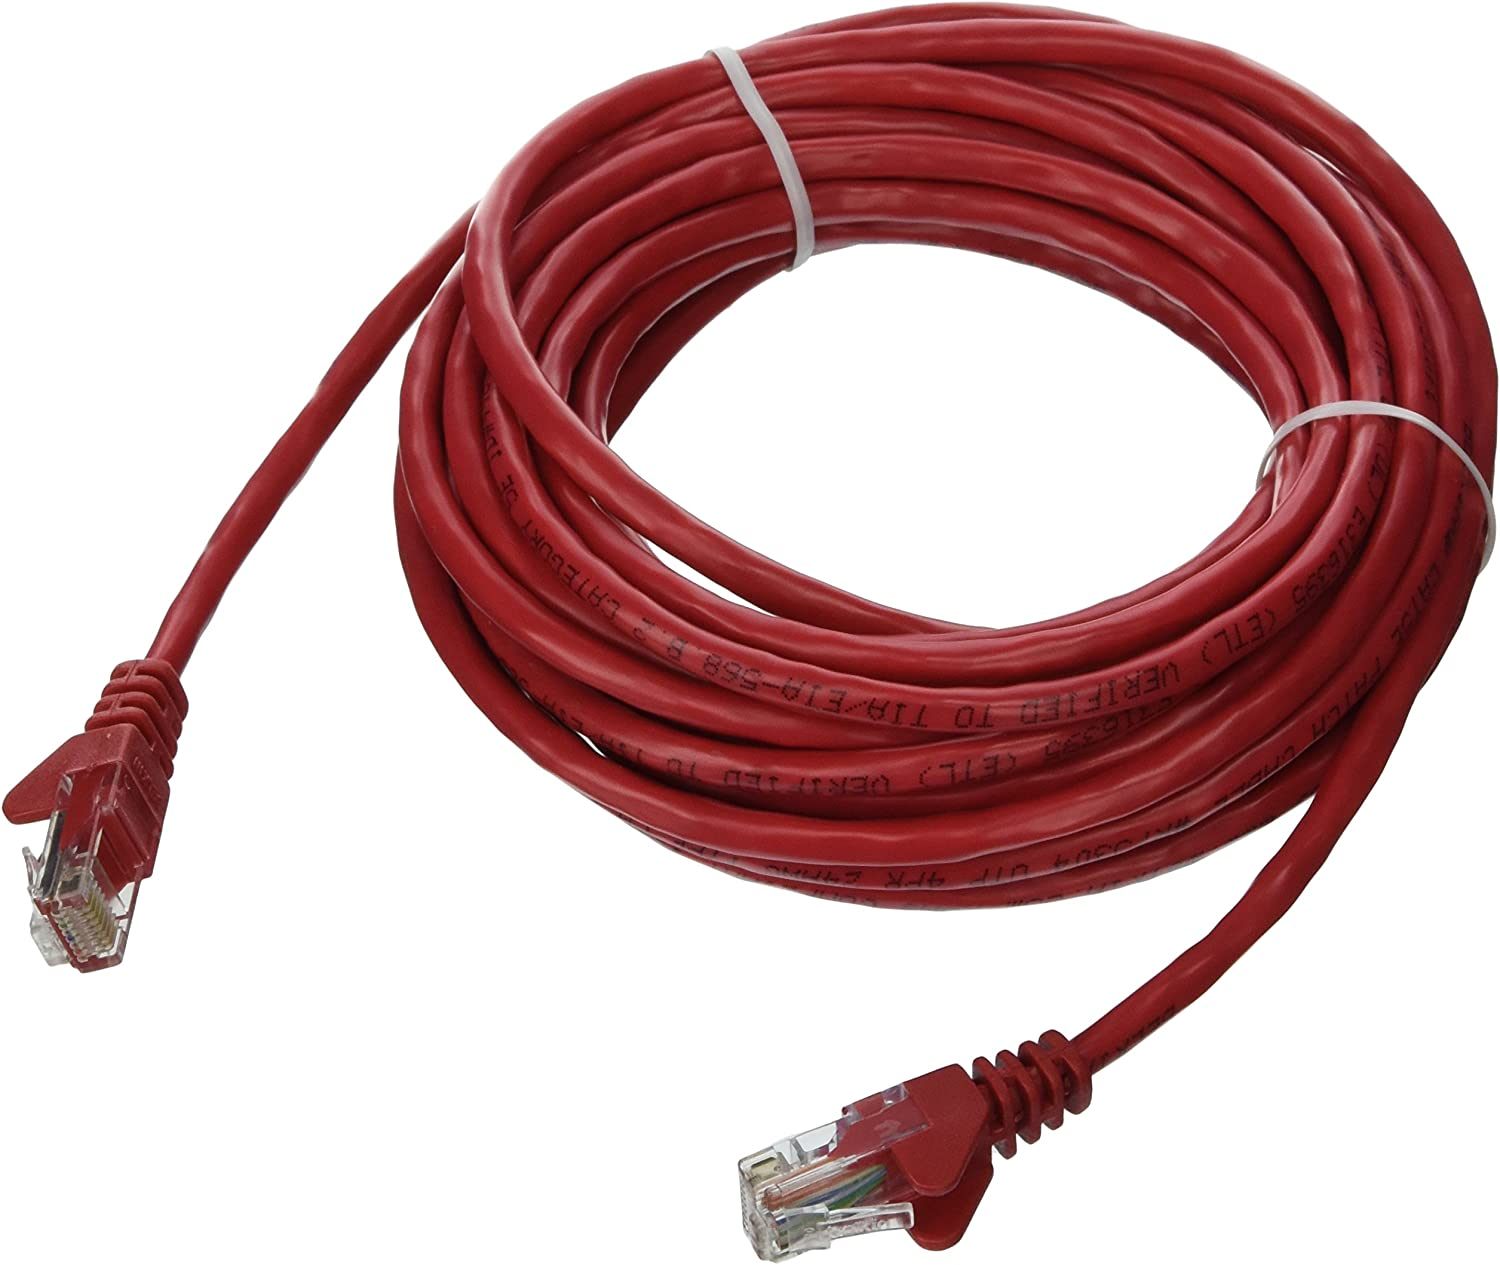 Red 350MHZ 1Gbps Network//Internet Cable BoltLion BL-694755 Snagless Cat5e RJ45 Ethernet Cable 1 Feet 4 Pack Professional Series